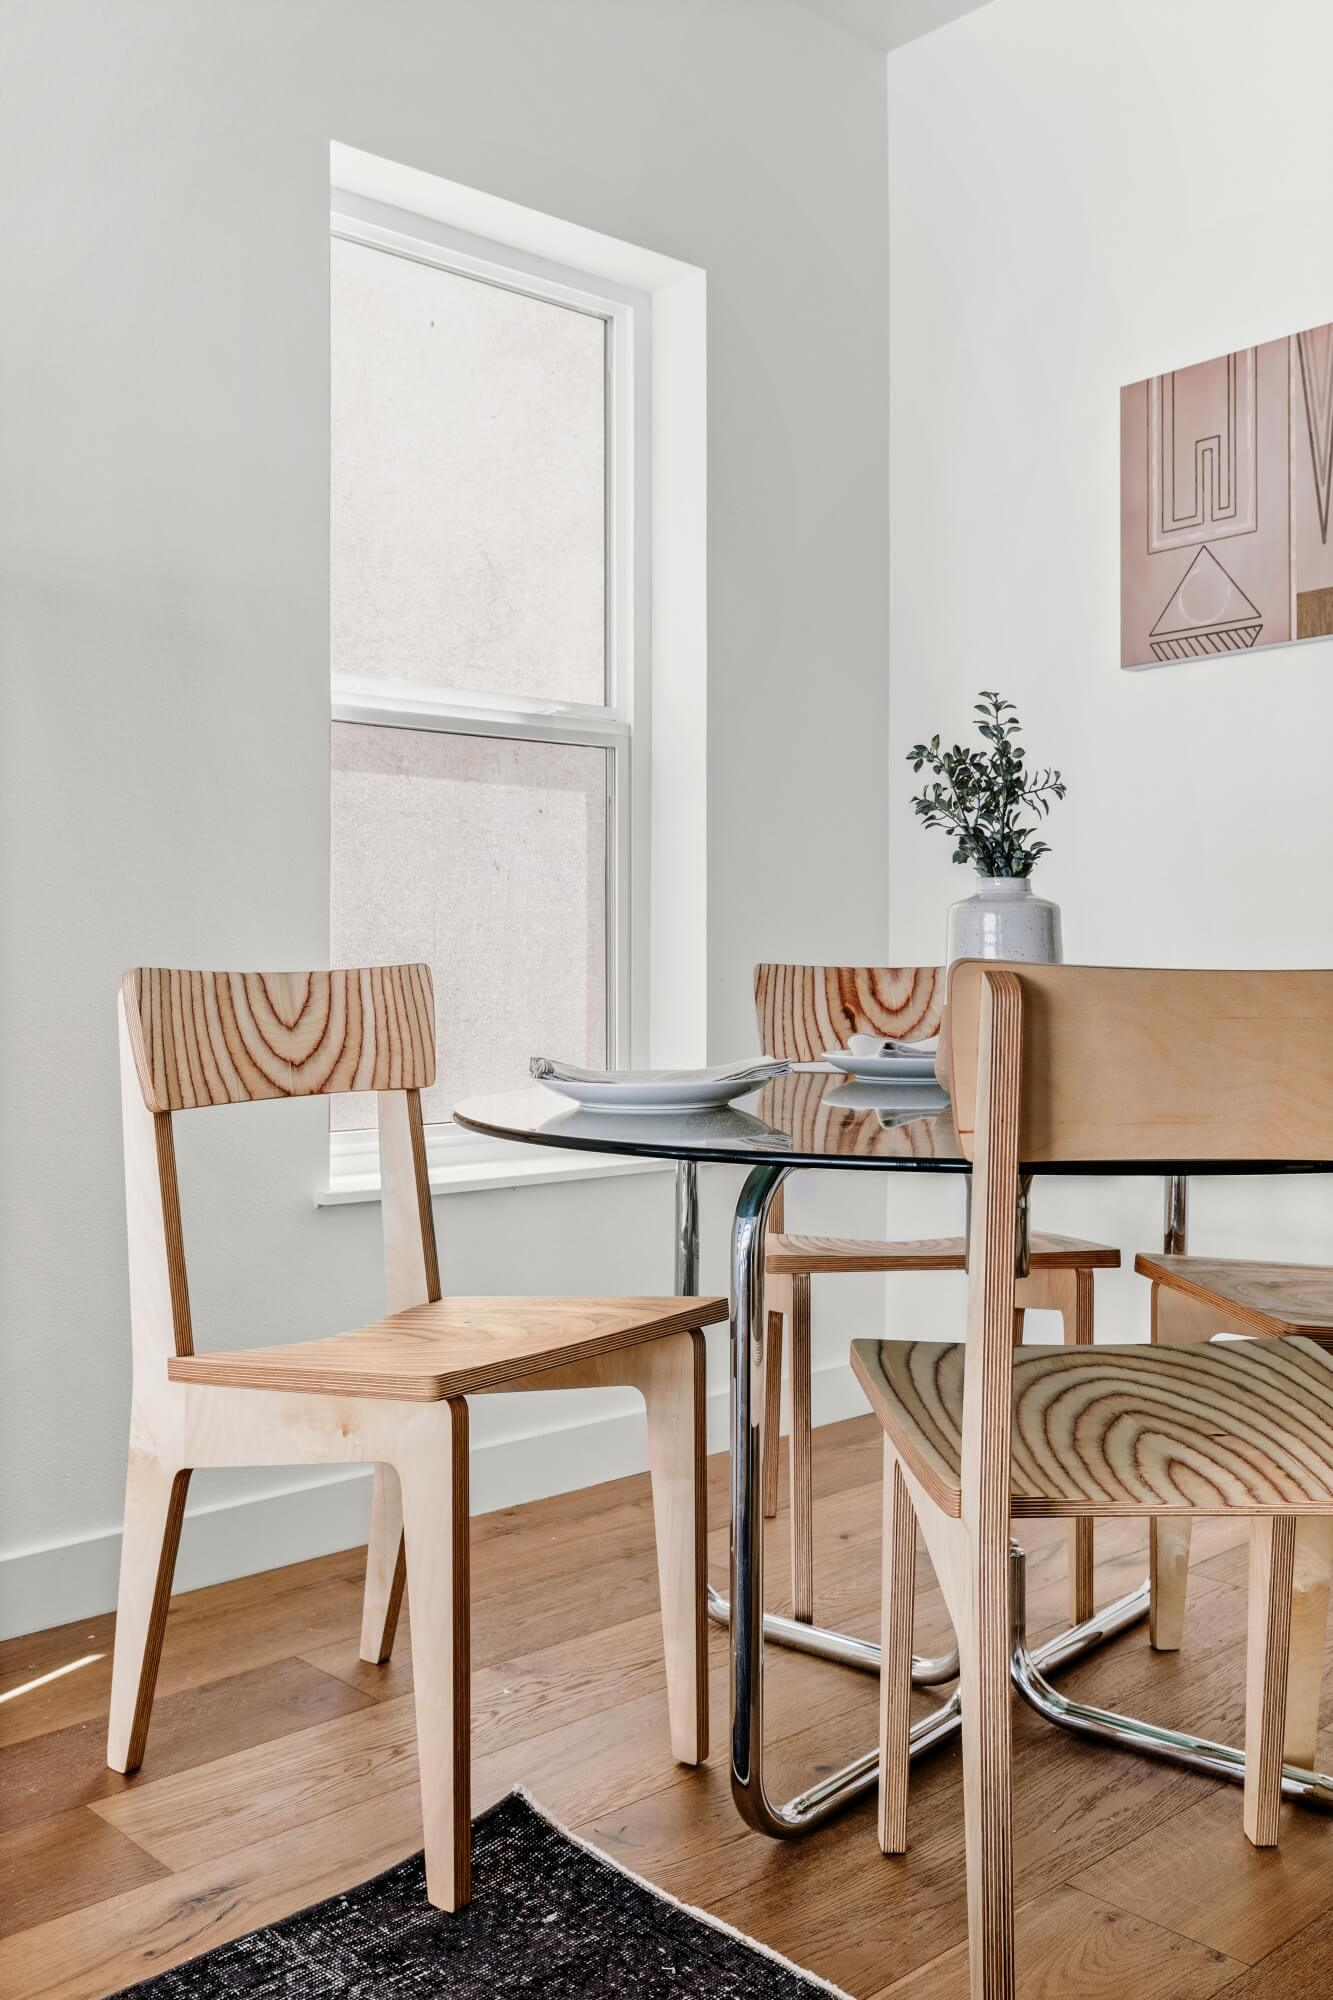 Wood chairs at a glass dining table.